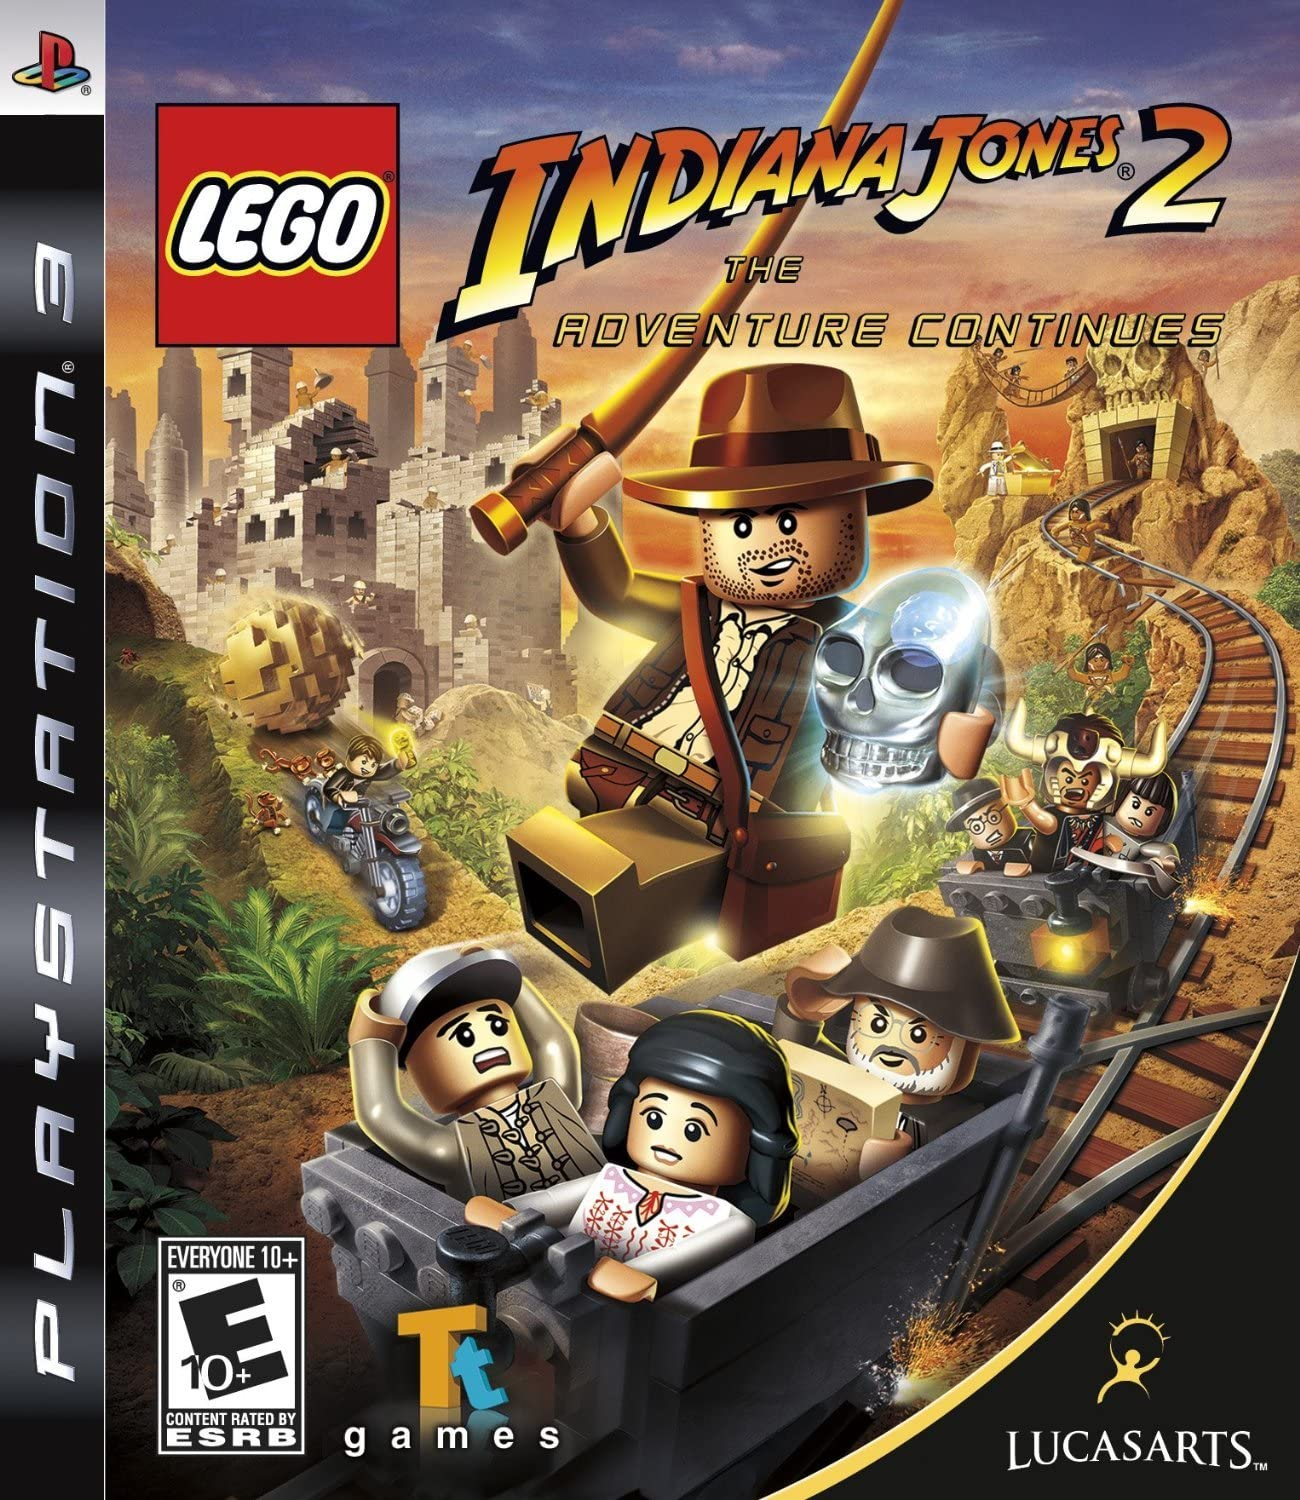 amazon com lego indiana jones 2 the adventure continues